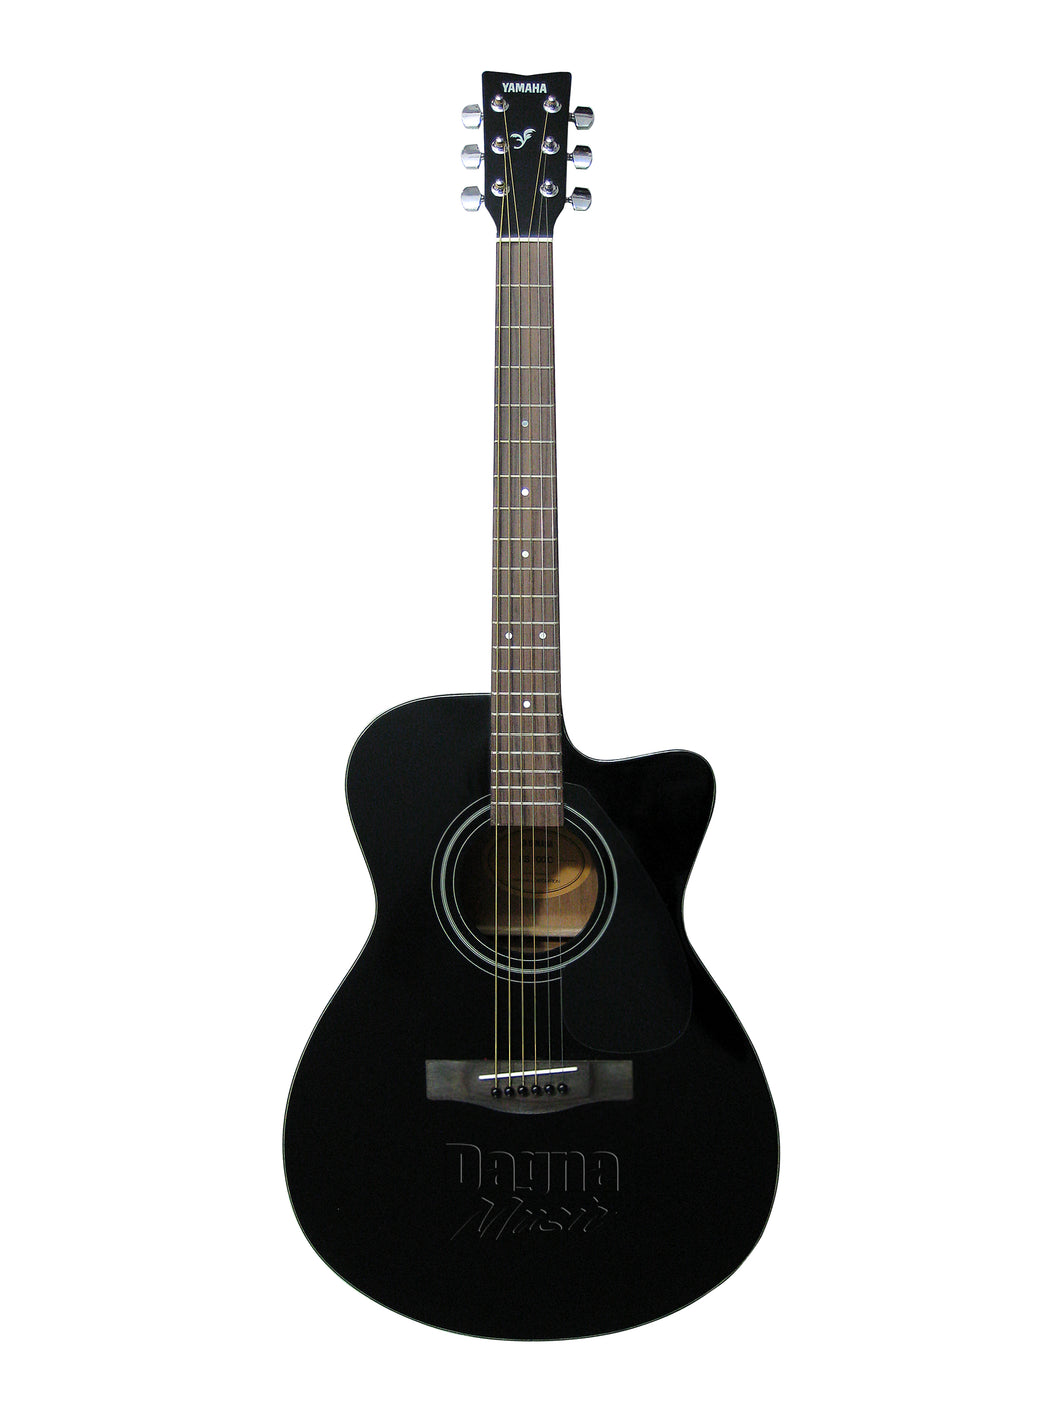 Yamaha FS-100C Black Cutaway Acoustic Guitar Black